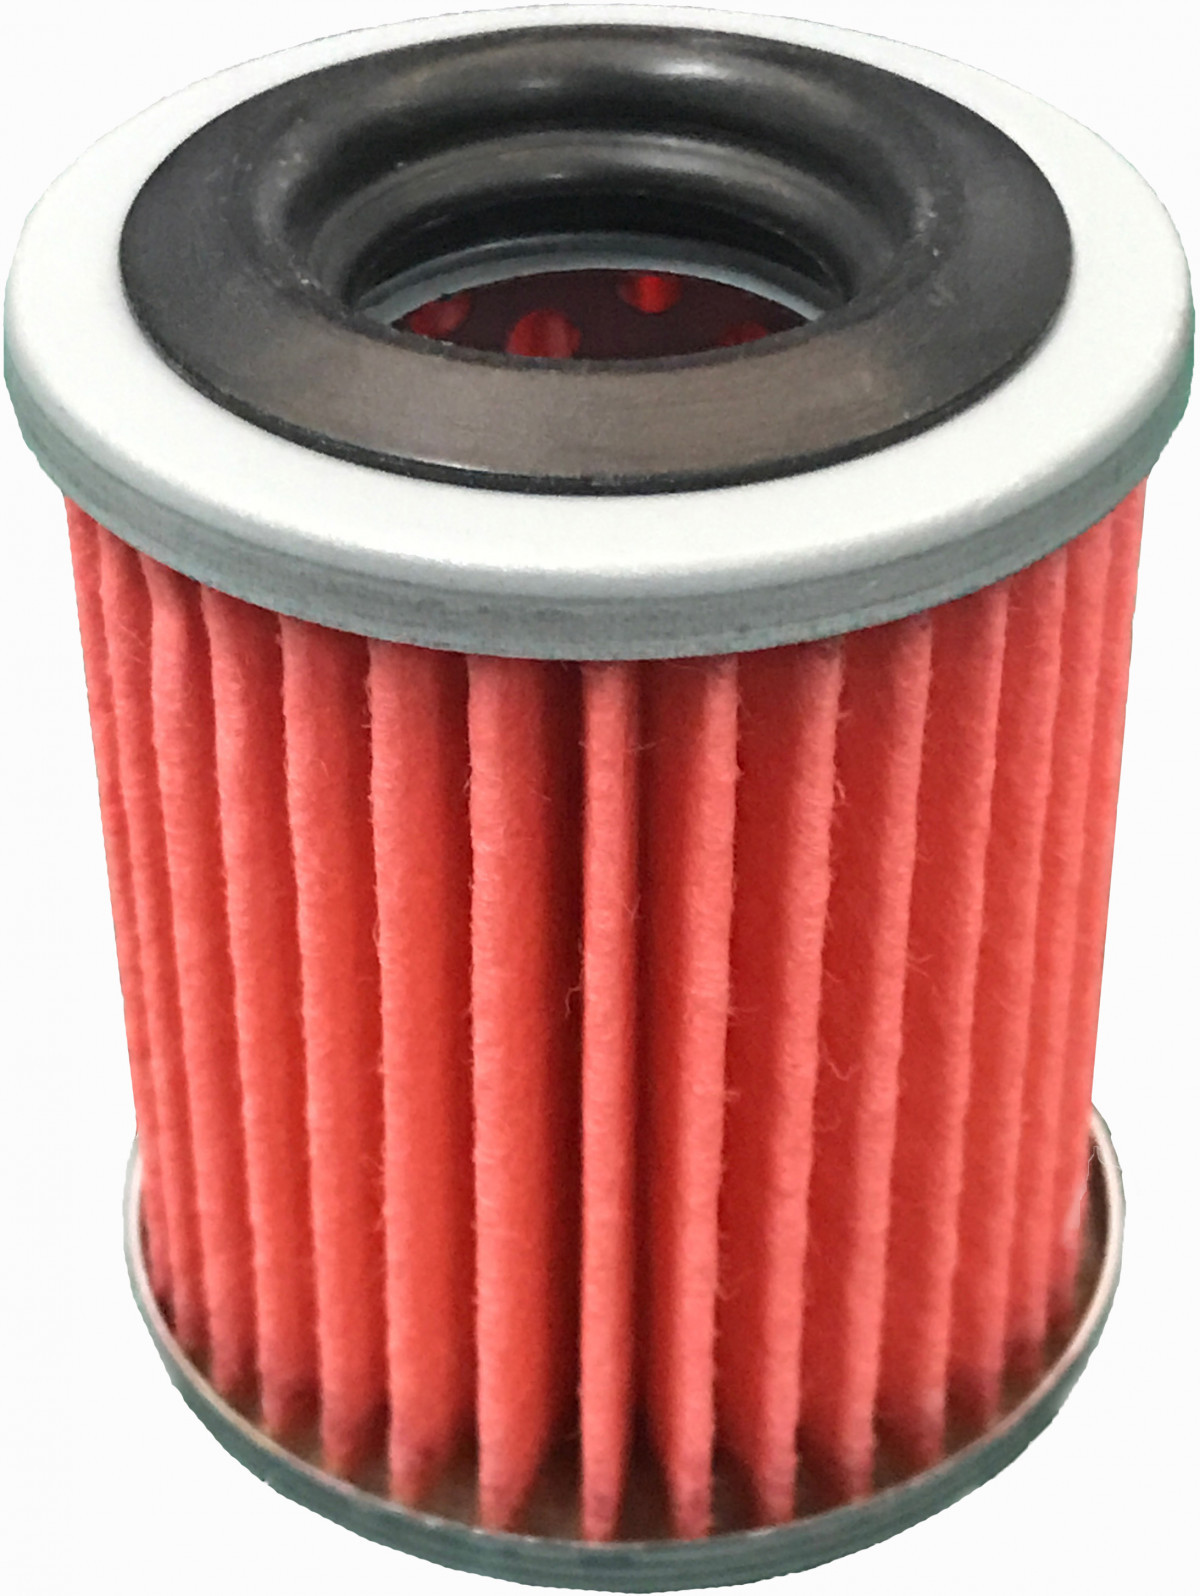 Maxresdefault likewise Oem Mitsubishi Evo In Cabin Air Refresher Filter Mr X besides Result further Acf likewise Evo. on 2003 mitsubishi lancer fuel filter